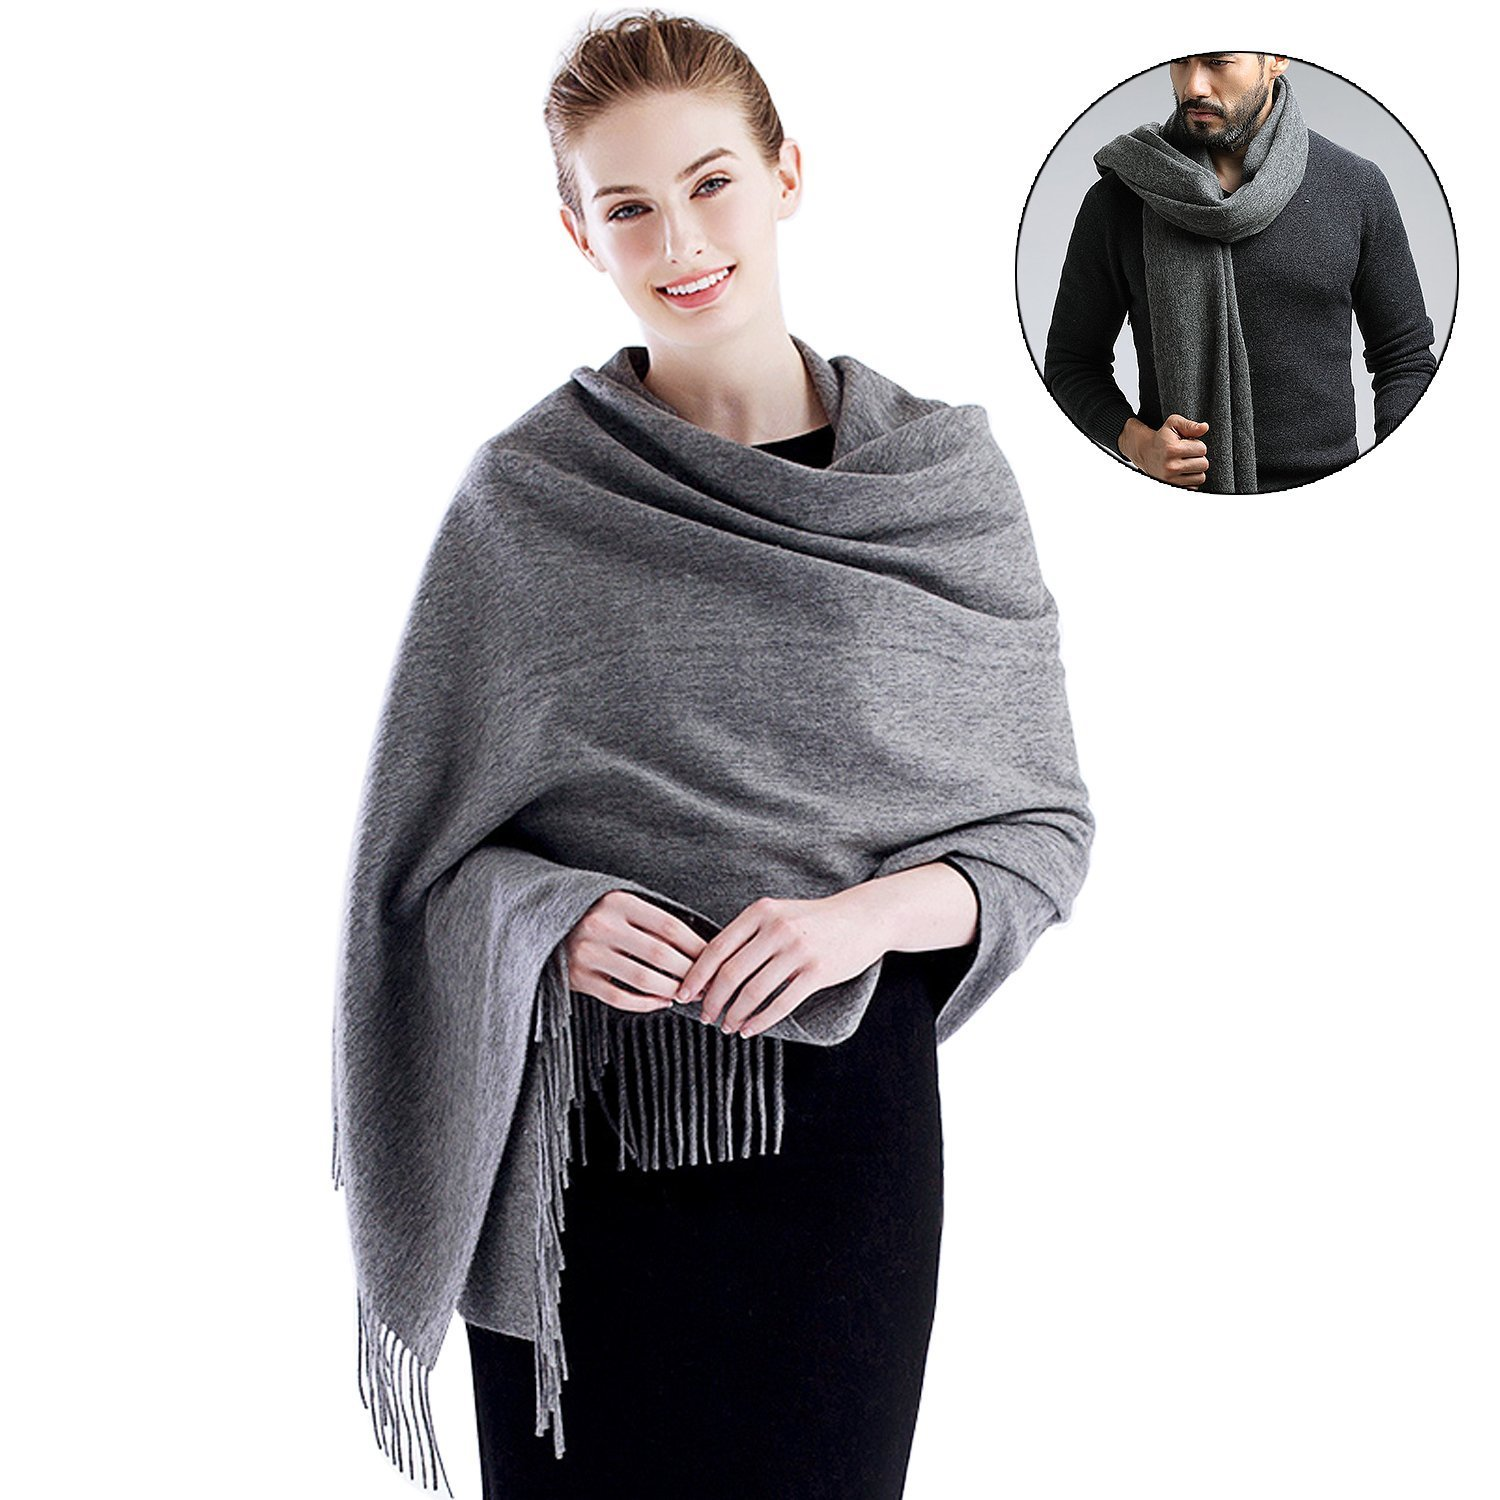 MOCOFO Wool Scarfs,Soft Cashmere Feel Large Shawl for Women and Men, Stole Scarfs for Winter